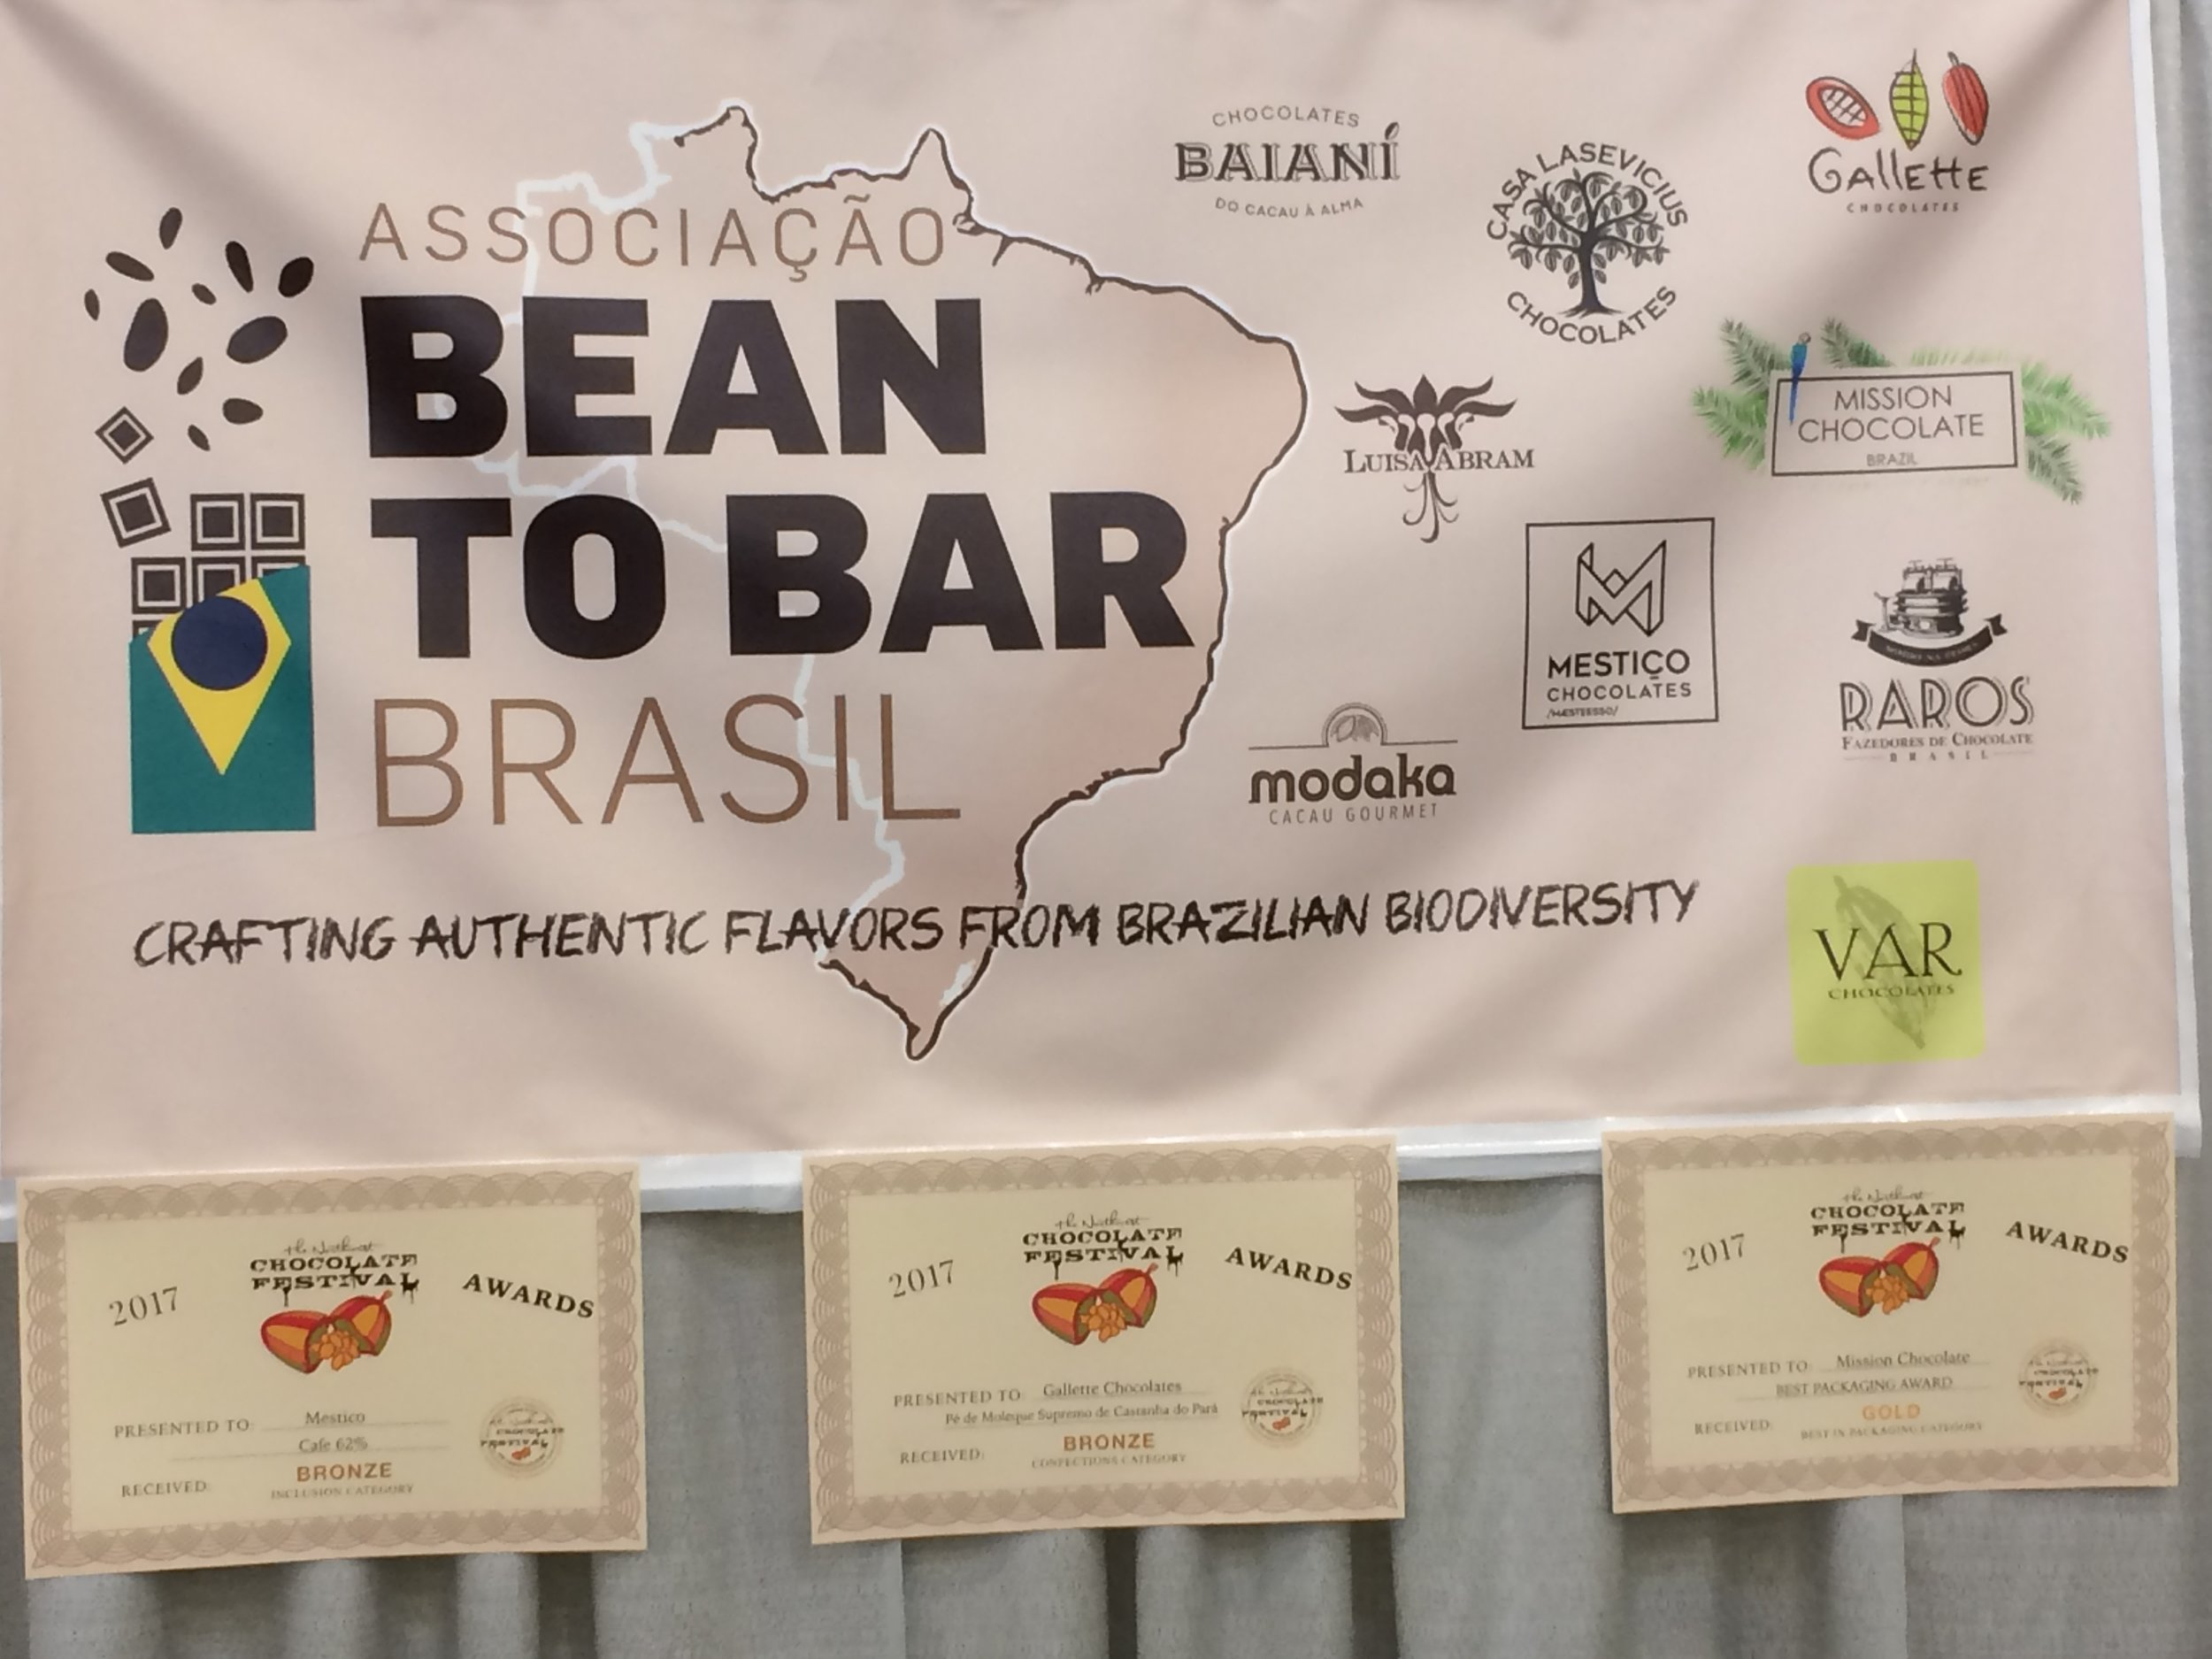 The wonderful chocolate makers from Brasil shared a booth. I attended a discussion of the bean-to-bar movement in Brasil, as well as an update on cacao & chocolate-making in Venezuela.